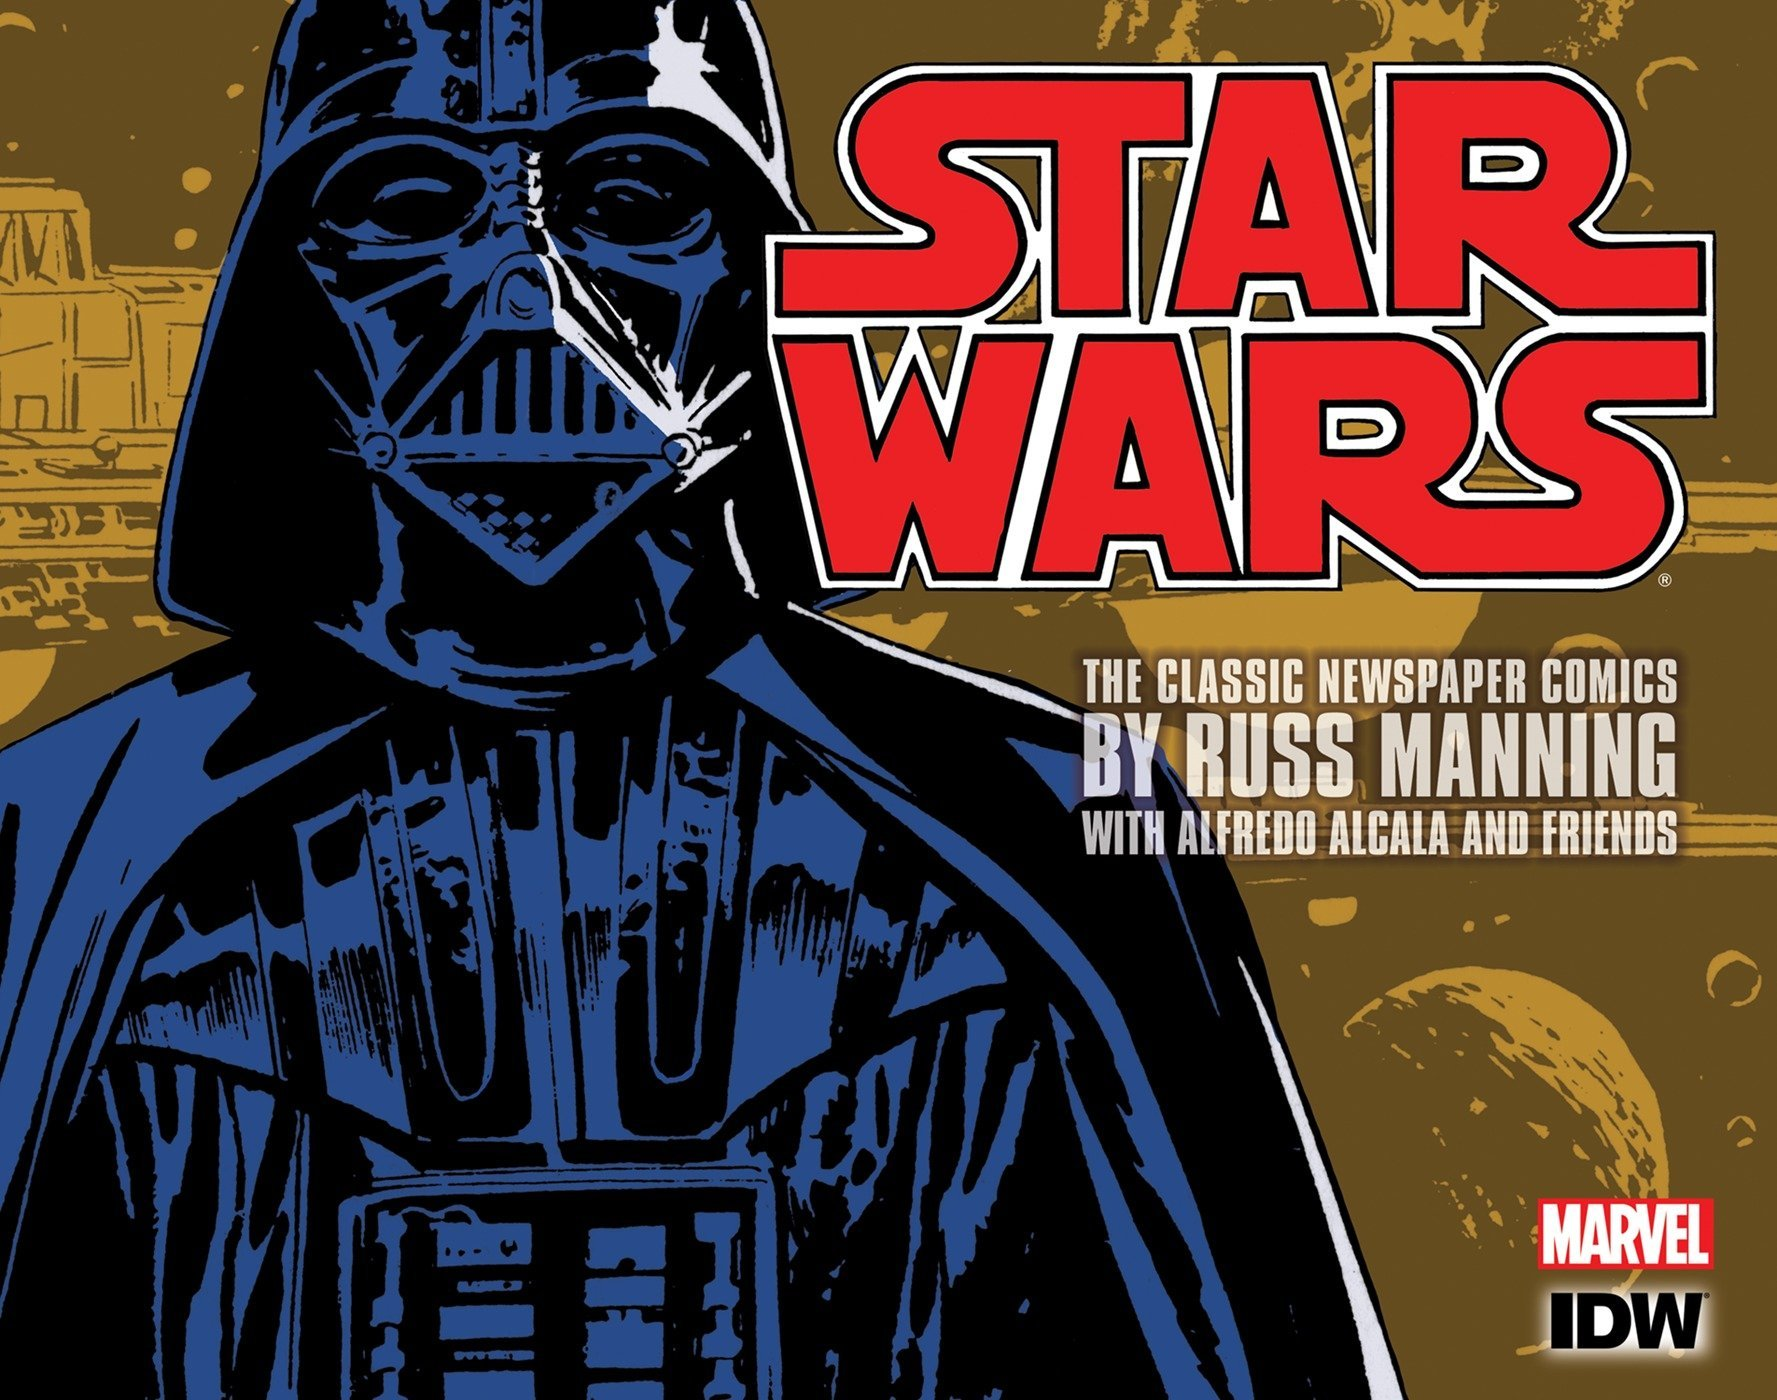 Star Wars: The Classic Newspaper Comics Volume 1